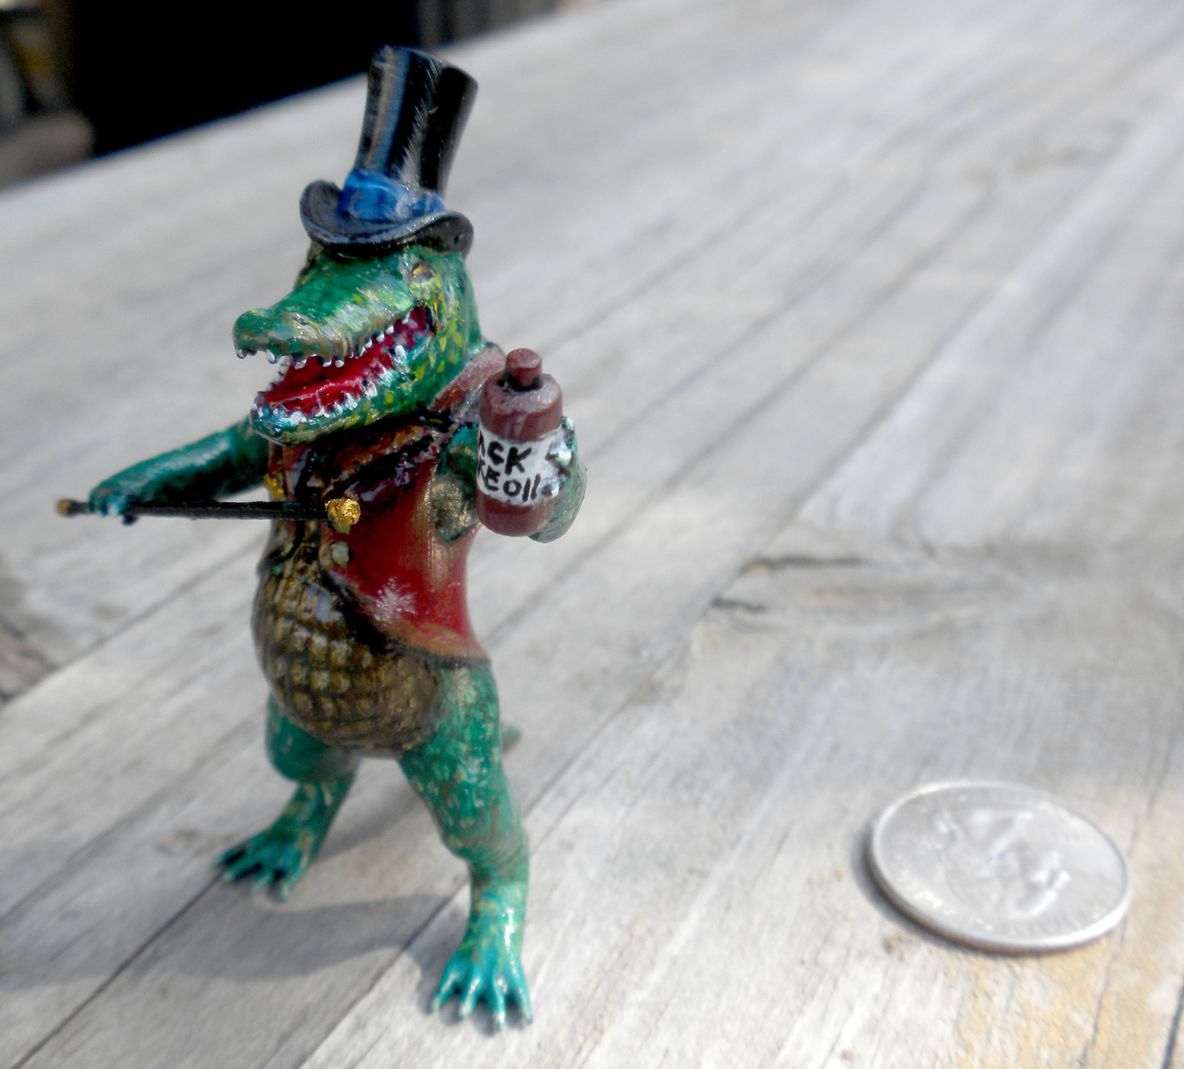 3D printed and painted Glib Alligator by Shane